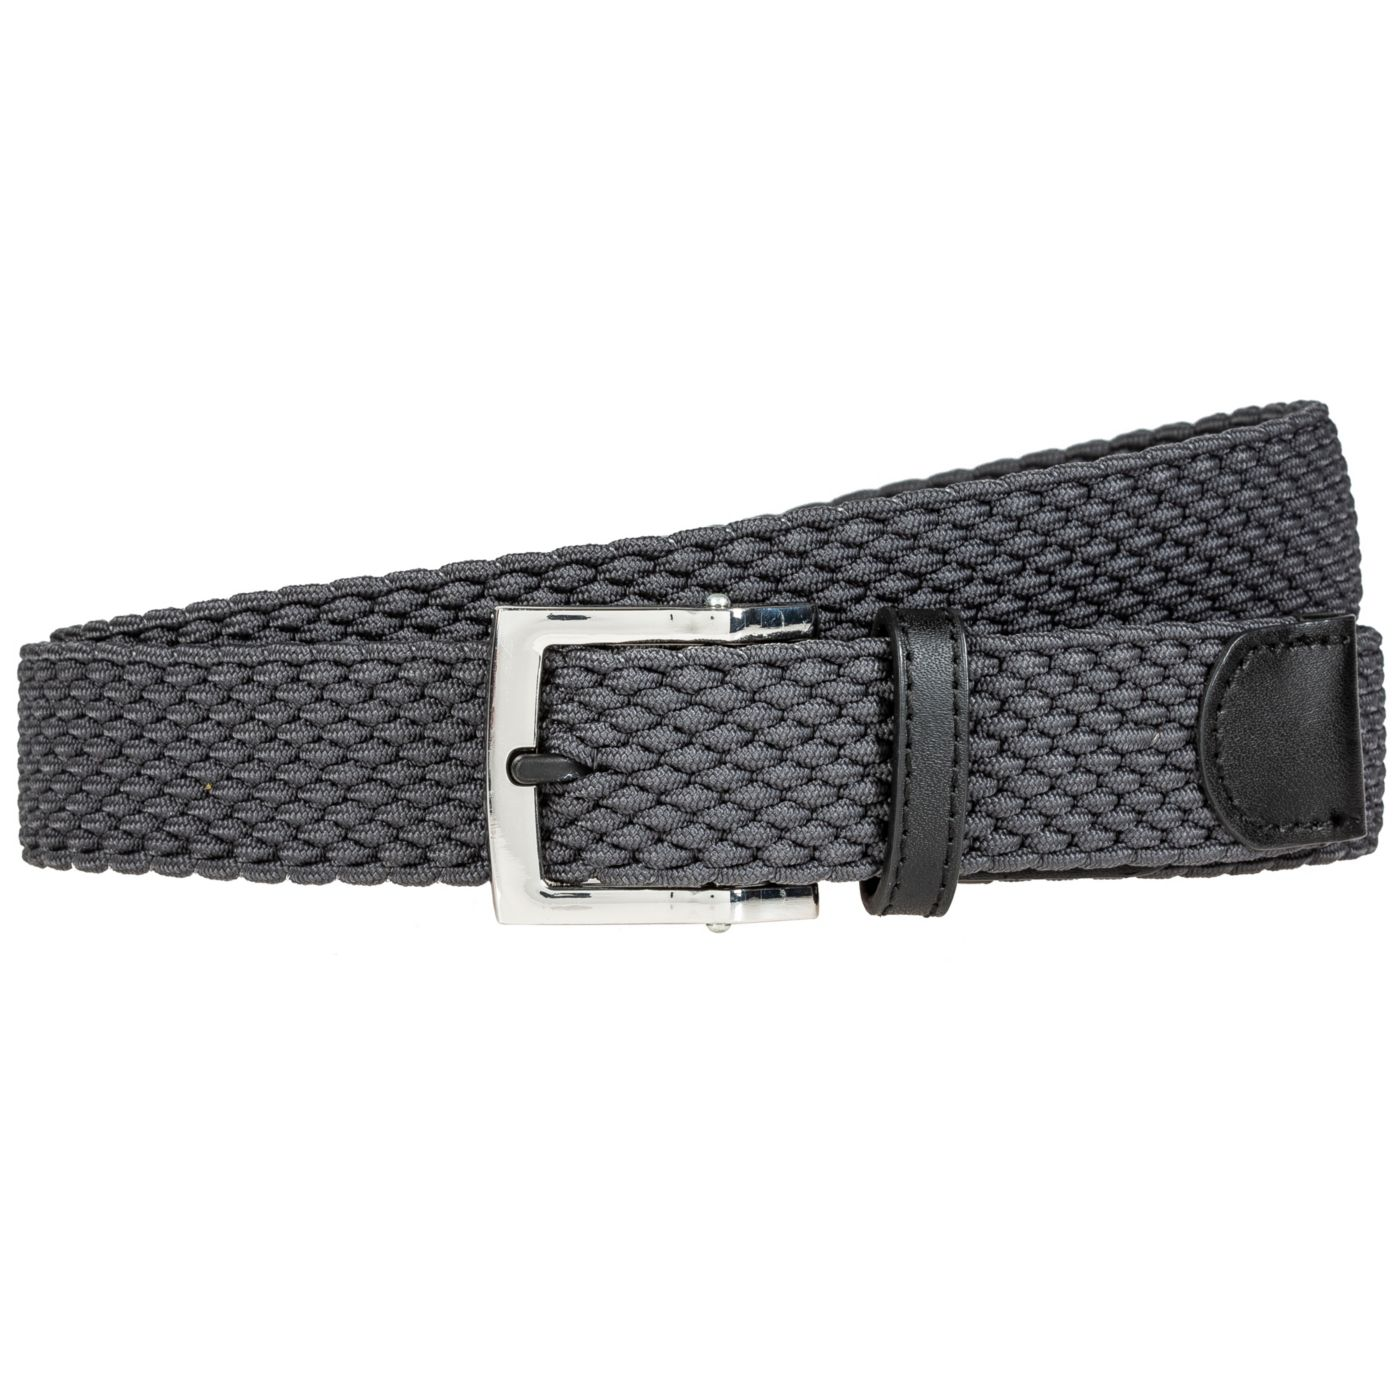 Nike Women's Stretch Woven Golf Belt